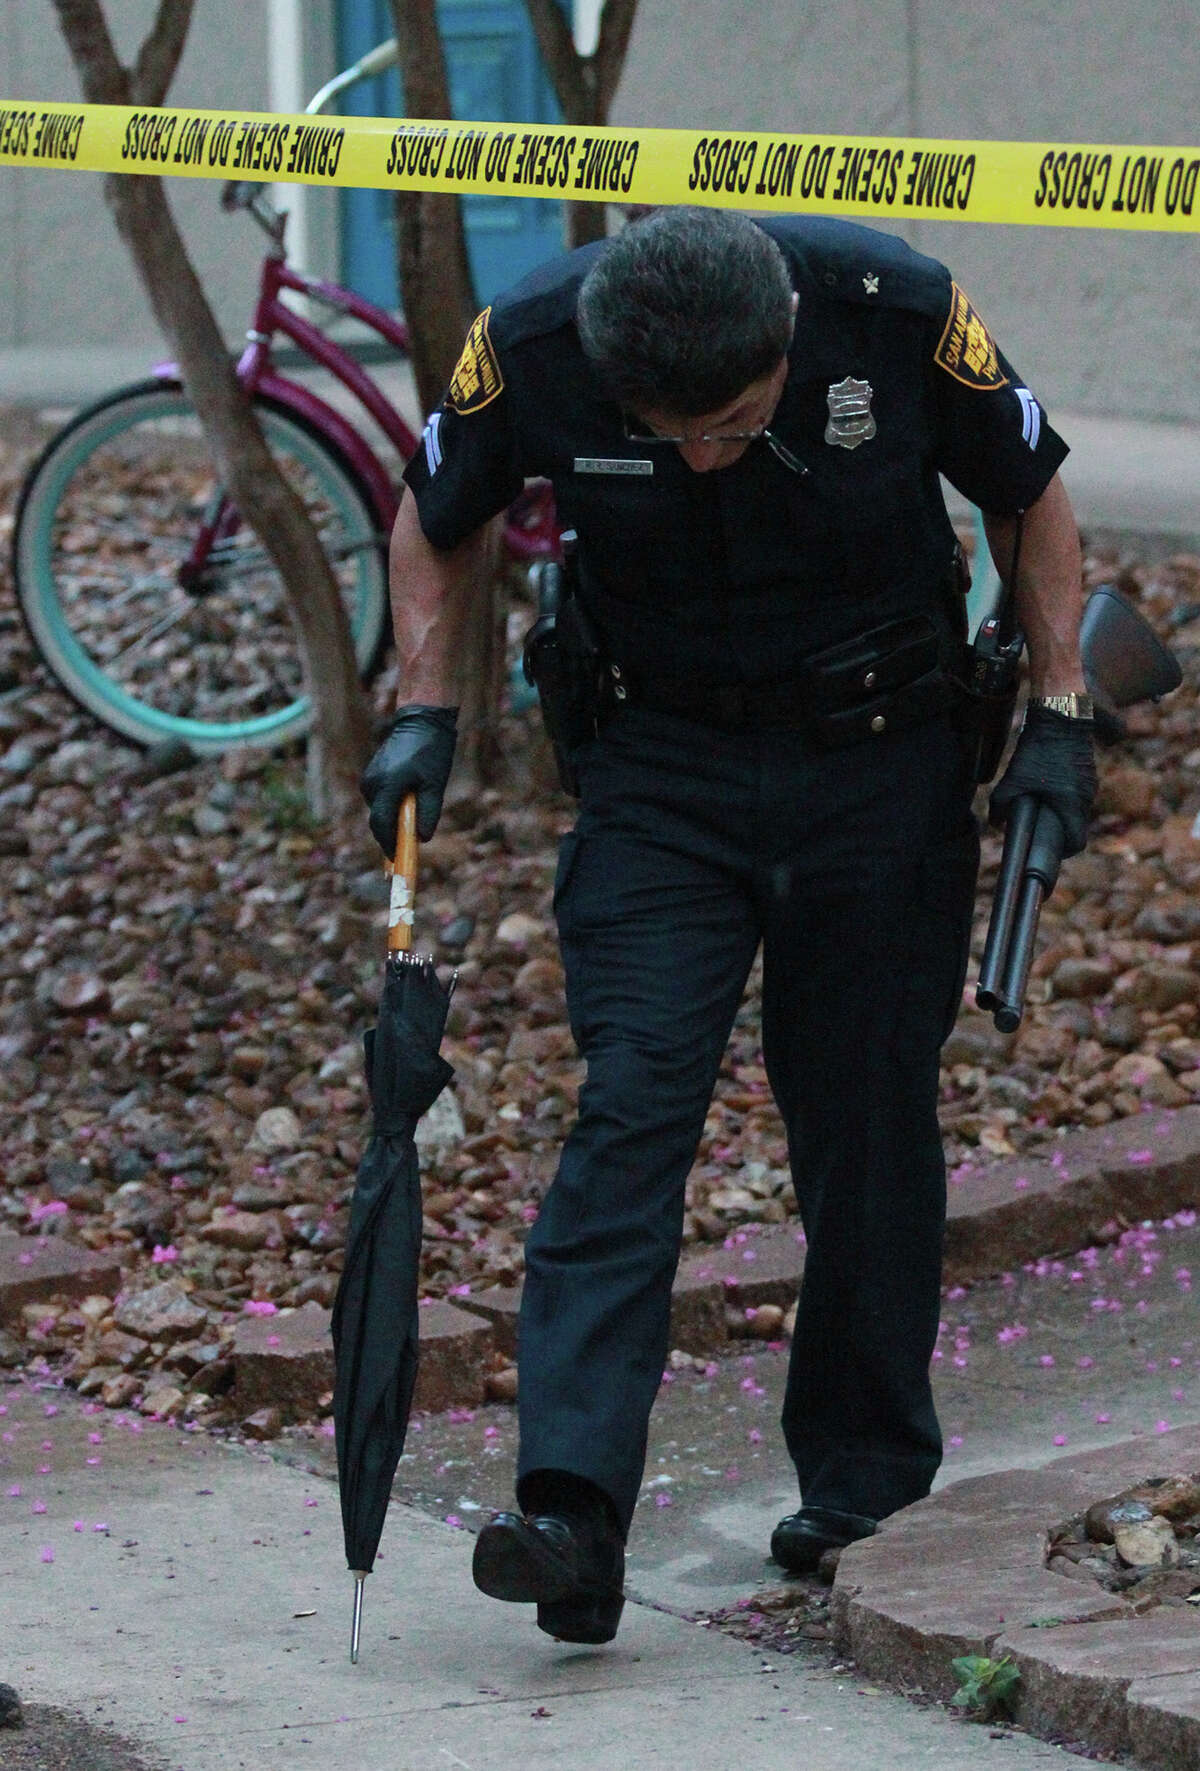 San Antonio police officer R.R. Sanchez walks to a patrol car Wednesday June 25, 2014 with a shotgun at the Avistar at Chase Hill apartments on the 15,800 block of Chase Hill where two men were shot. One man died at the apartment and another died at University Hospital according to San Antonio police sergeant Andrew Ling.